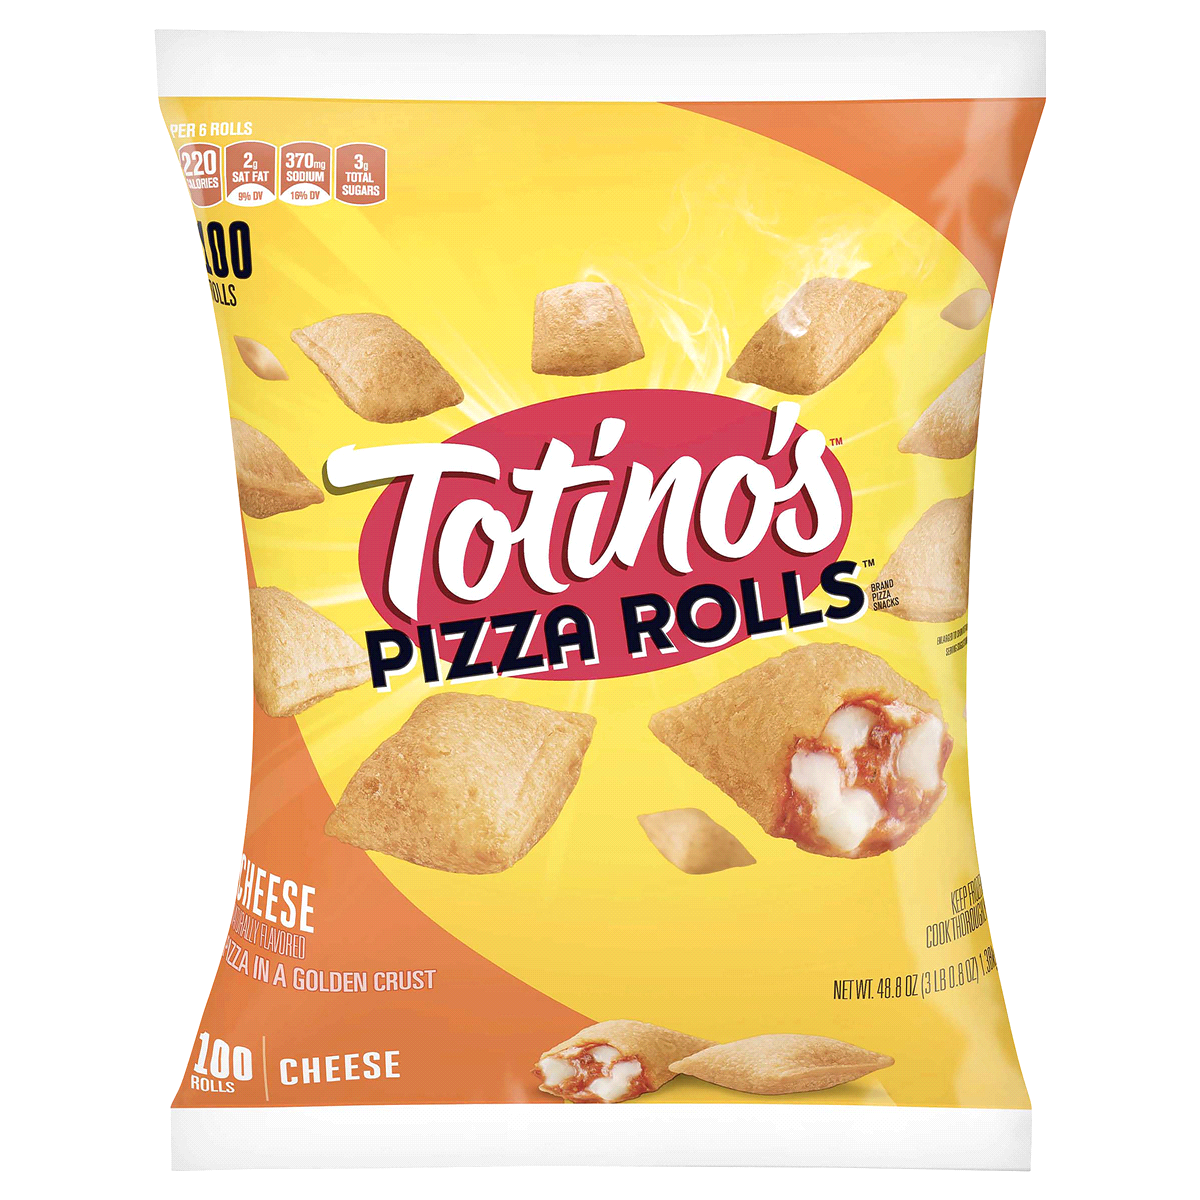 TOTINOS PIZZA ROLLS CHEESE 100 CT 48.85 OZ***SHIP TO ORDER BY NOON FRIDAY NOV 13th. ARRIVES FOR DELIVERY MON NOVEMBER 23rd***